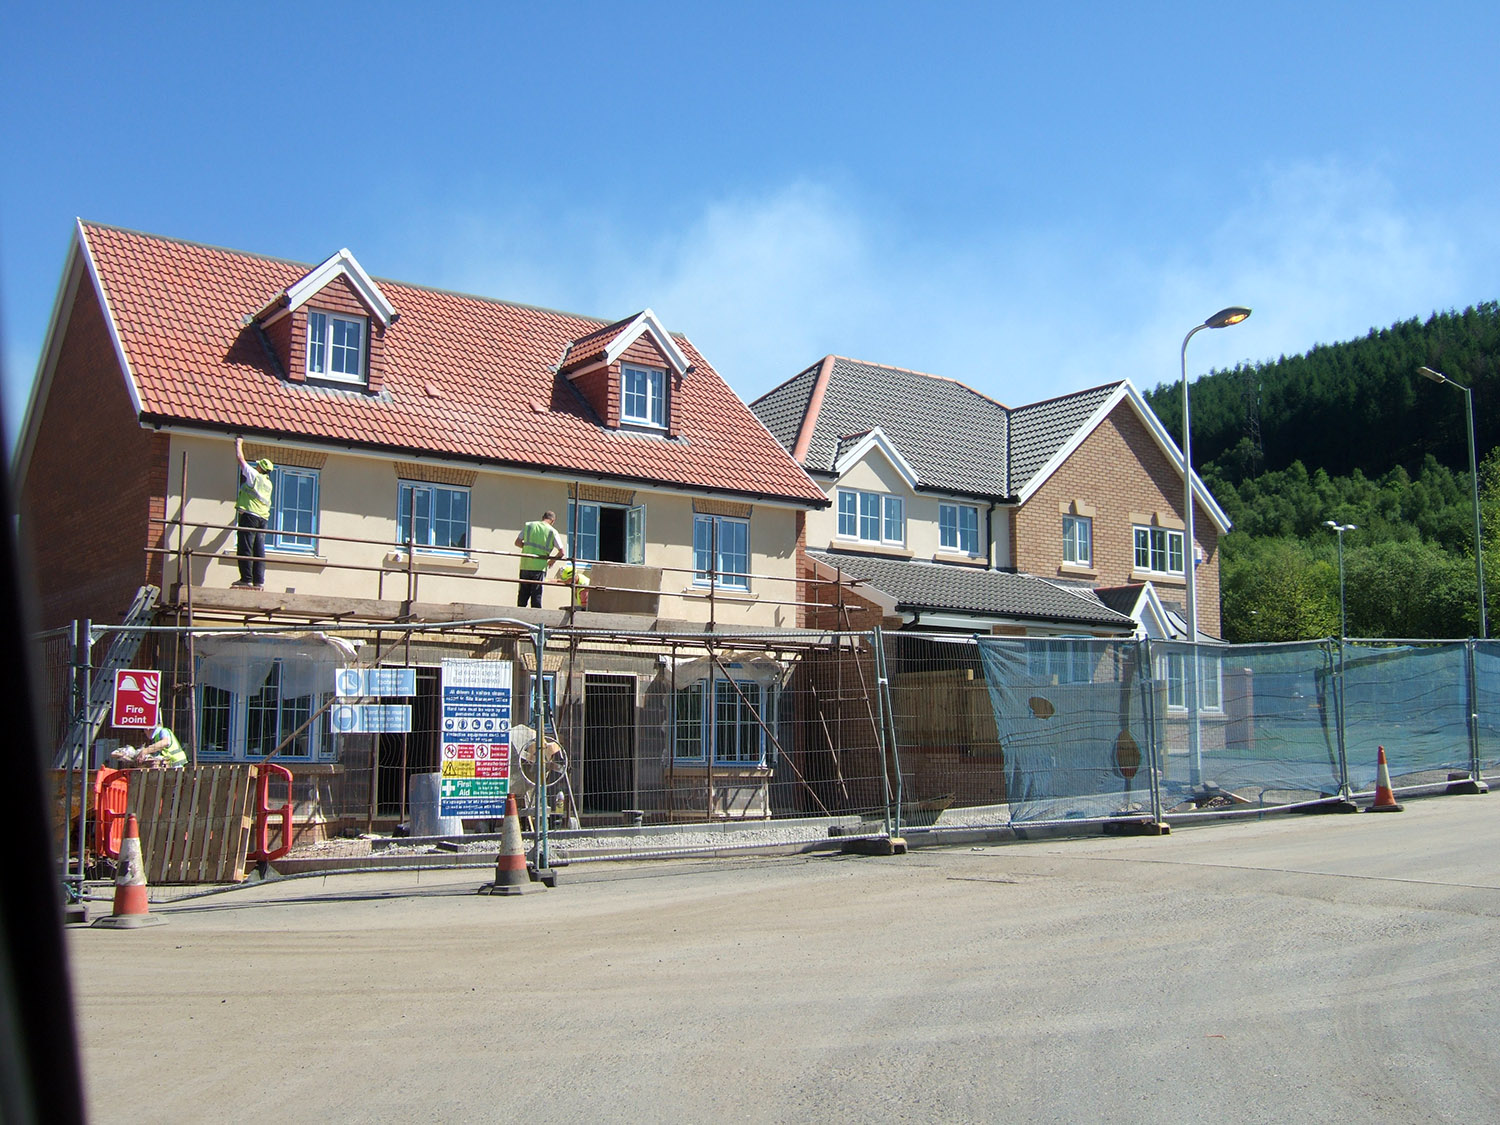 New homes are often found on the outskirts of towns